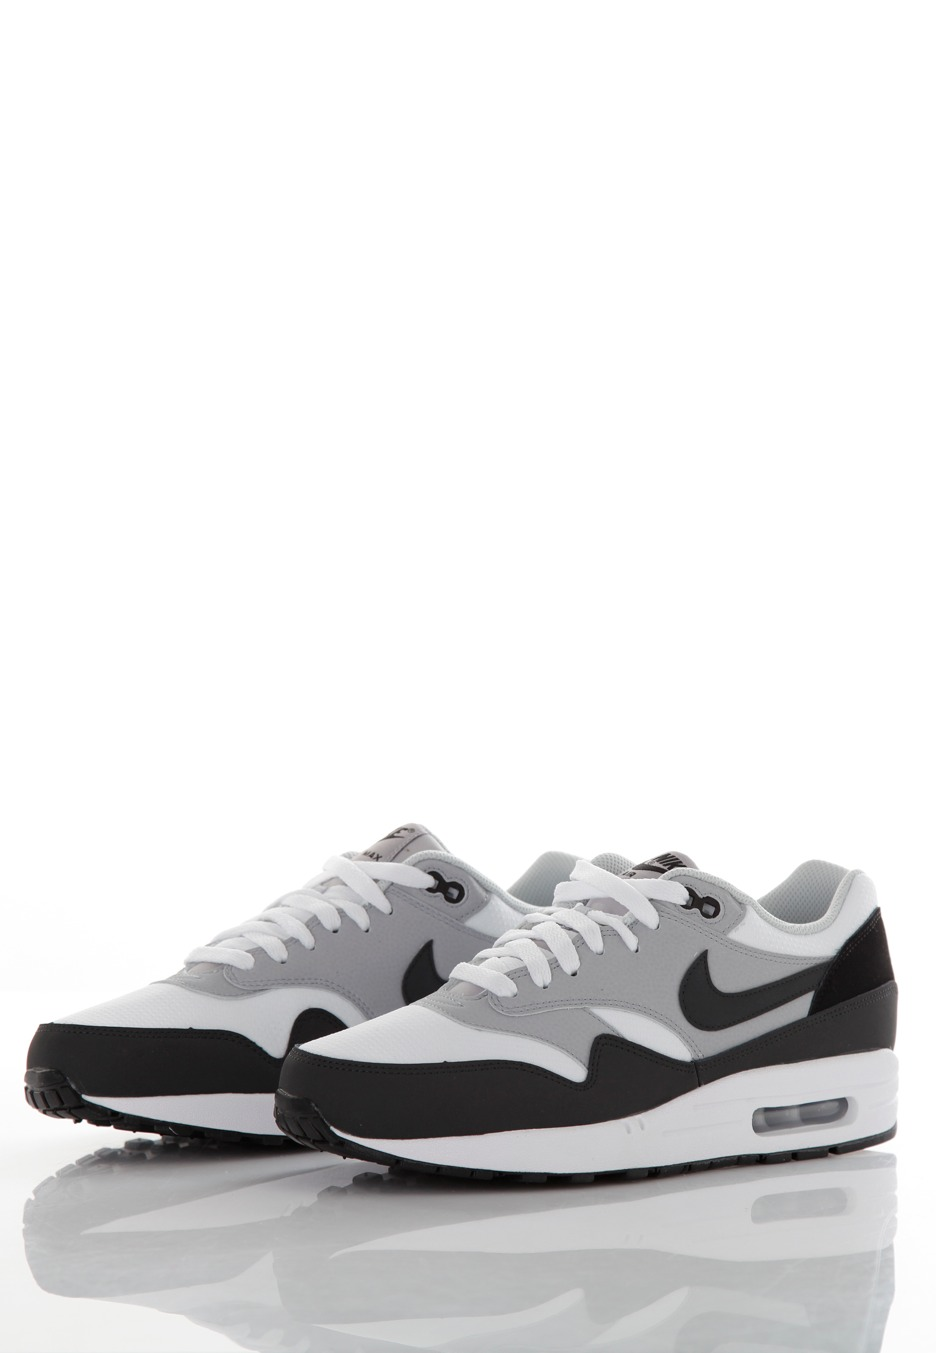 premium selection 84542 0e3c5 ... Nike - Air Max 1 Essential White Anthracite Wolf Grey Black - Shoes ...